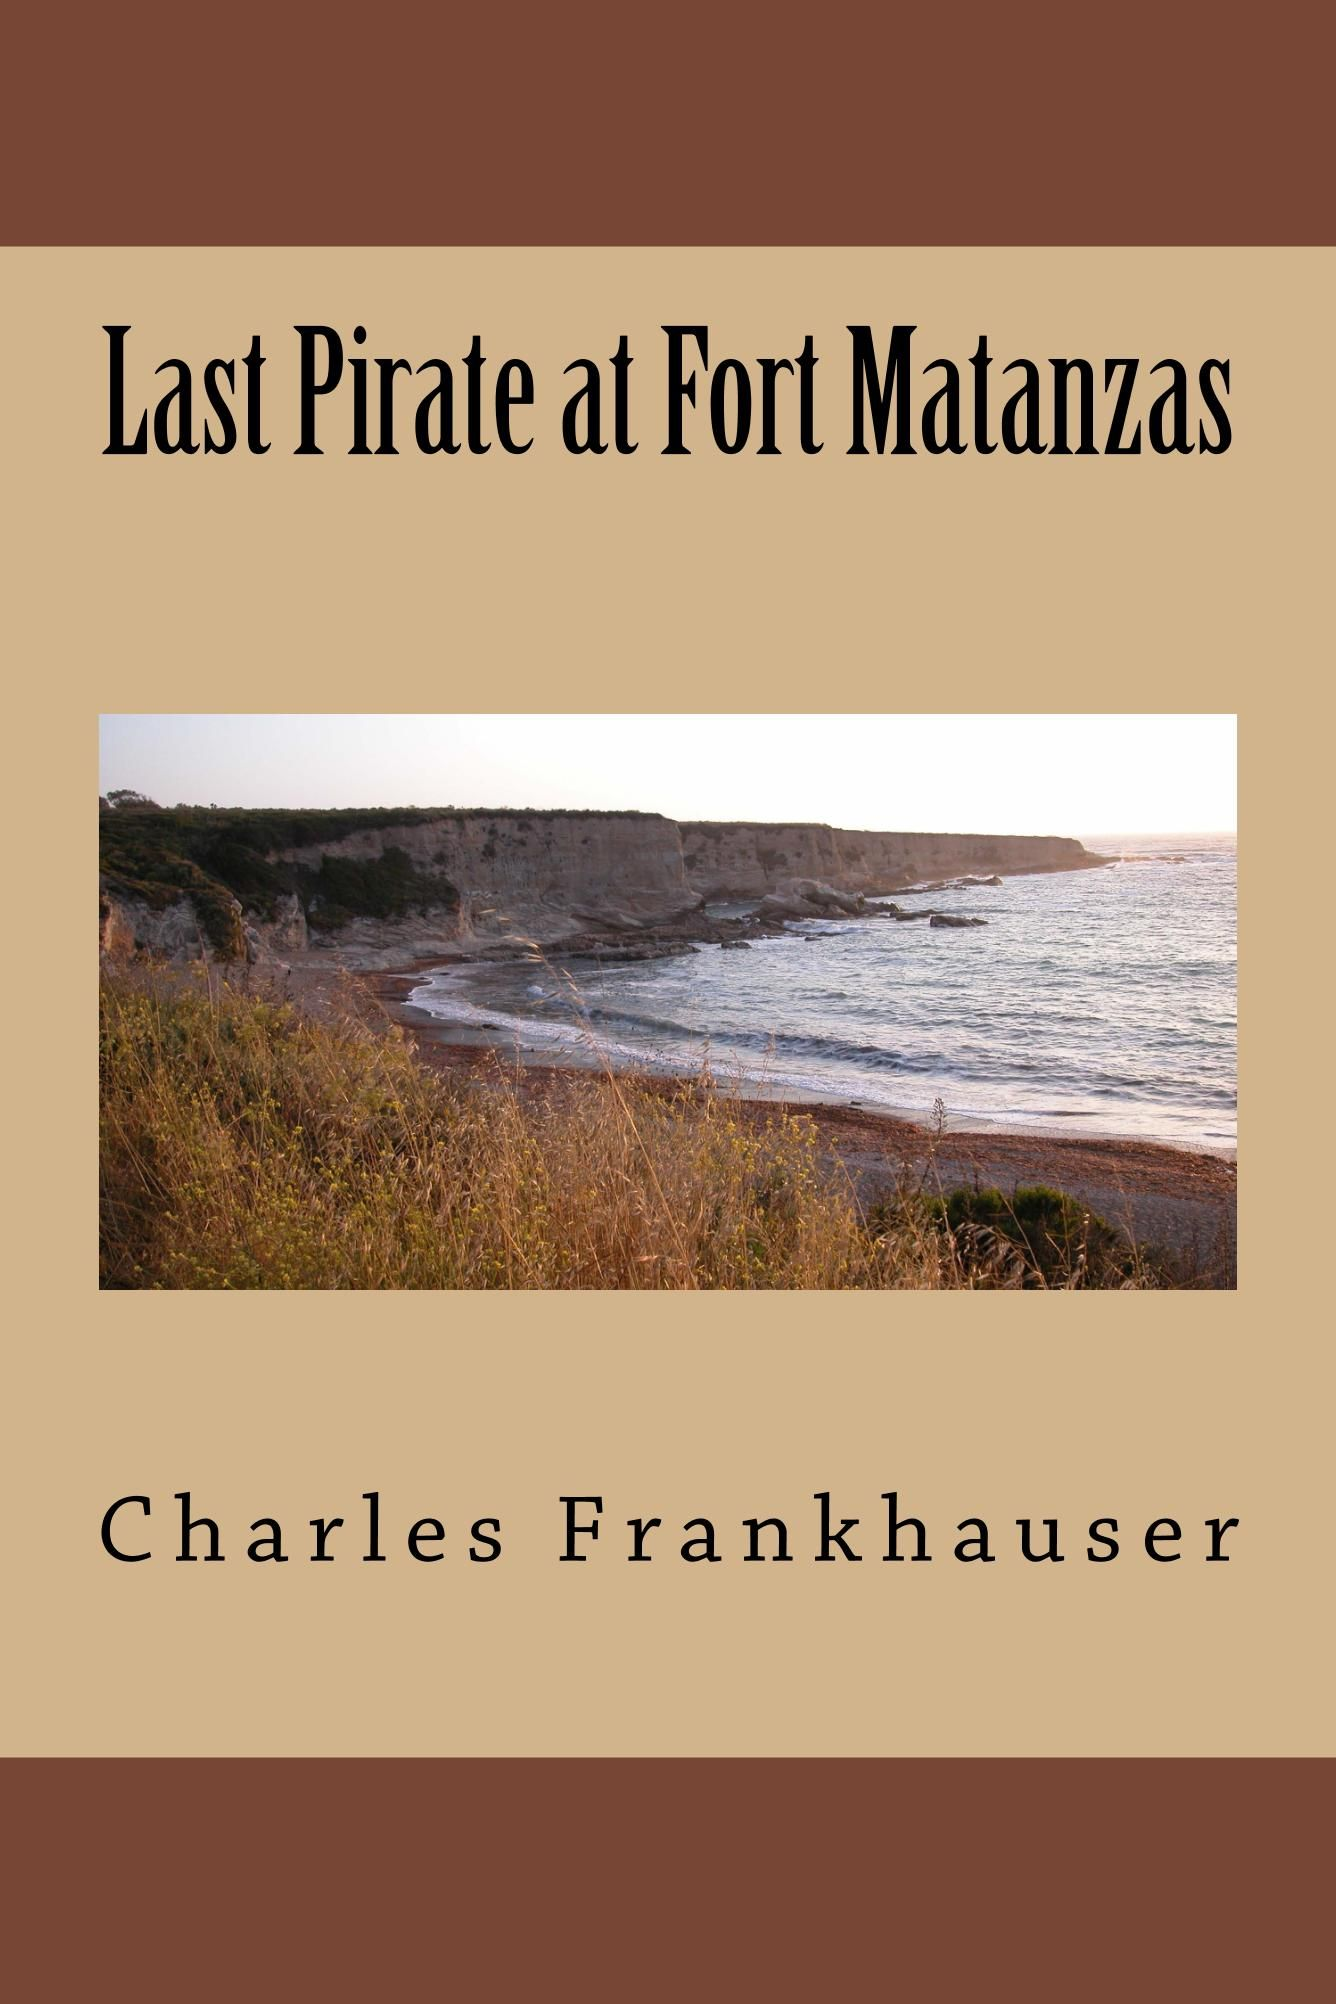 A Novella In Historical Fiction Laced With Humor And